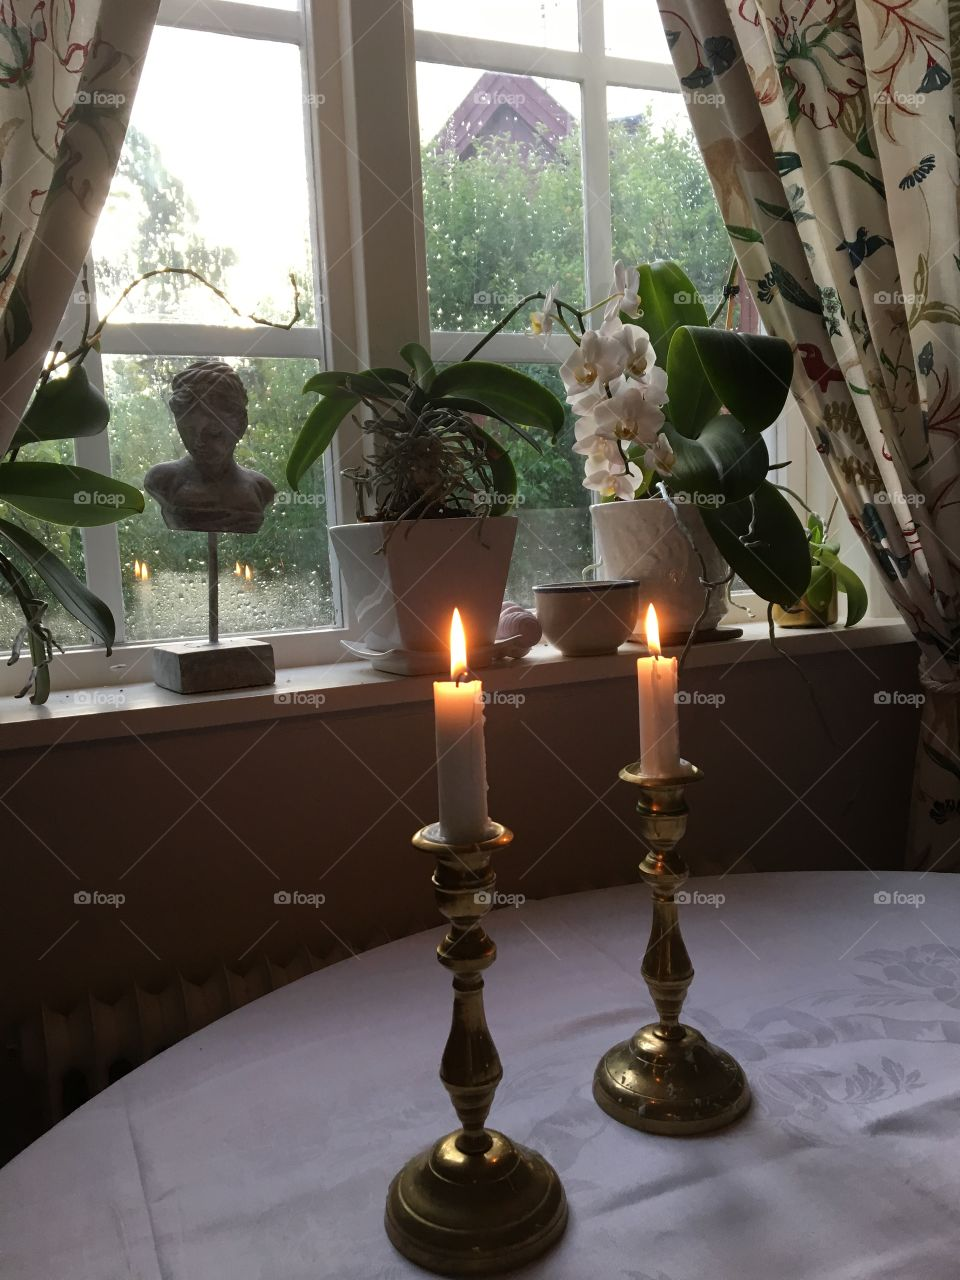 Candlelights and flowers  window with raindrops